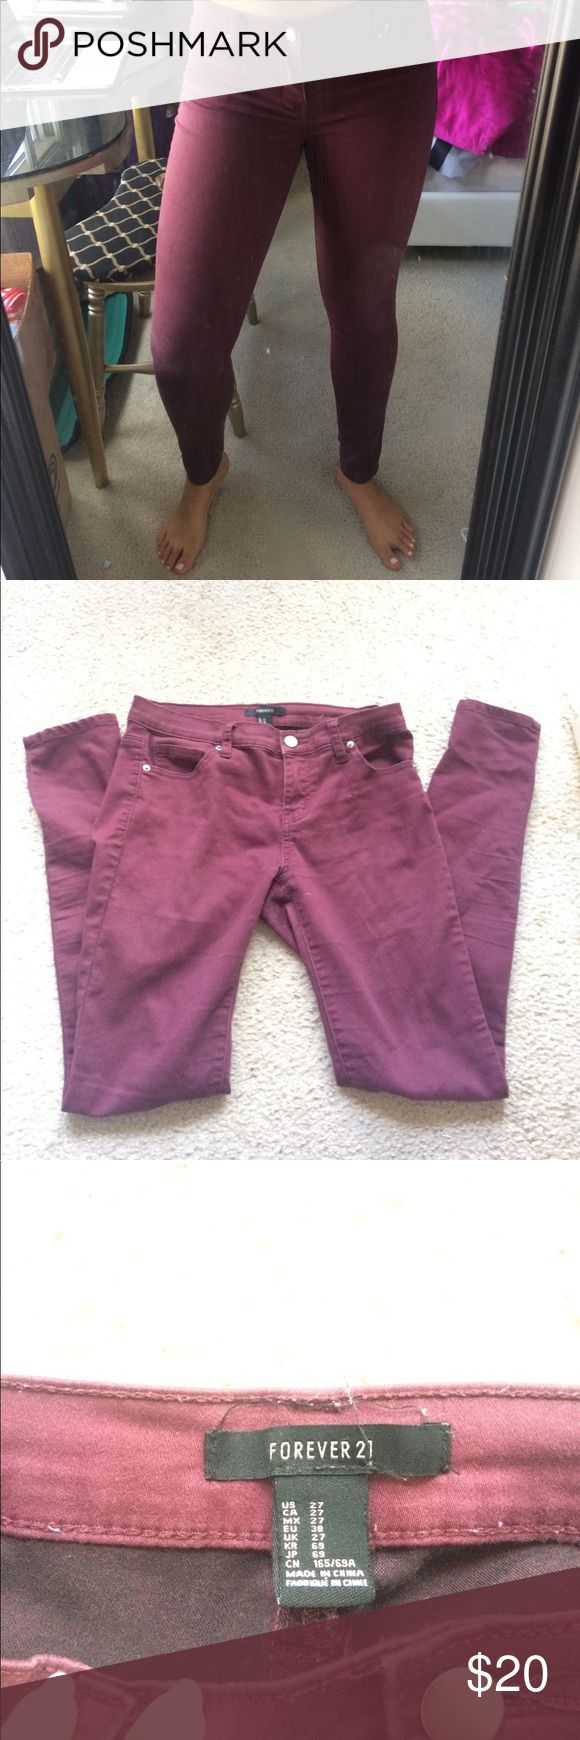 Dark wine 🍷 skinny jeans Burgundy/wine colored low-rise skinny jeans. Super stretchy and comfortable. Forever 21 Jeans Skinny